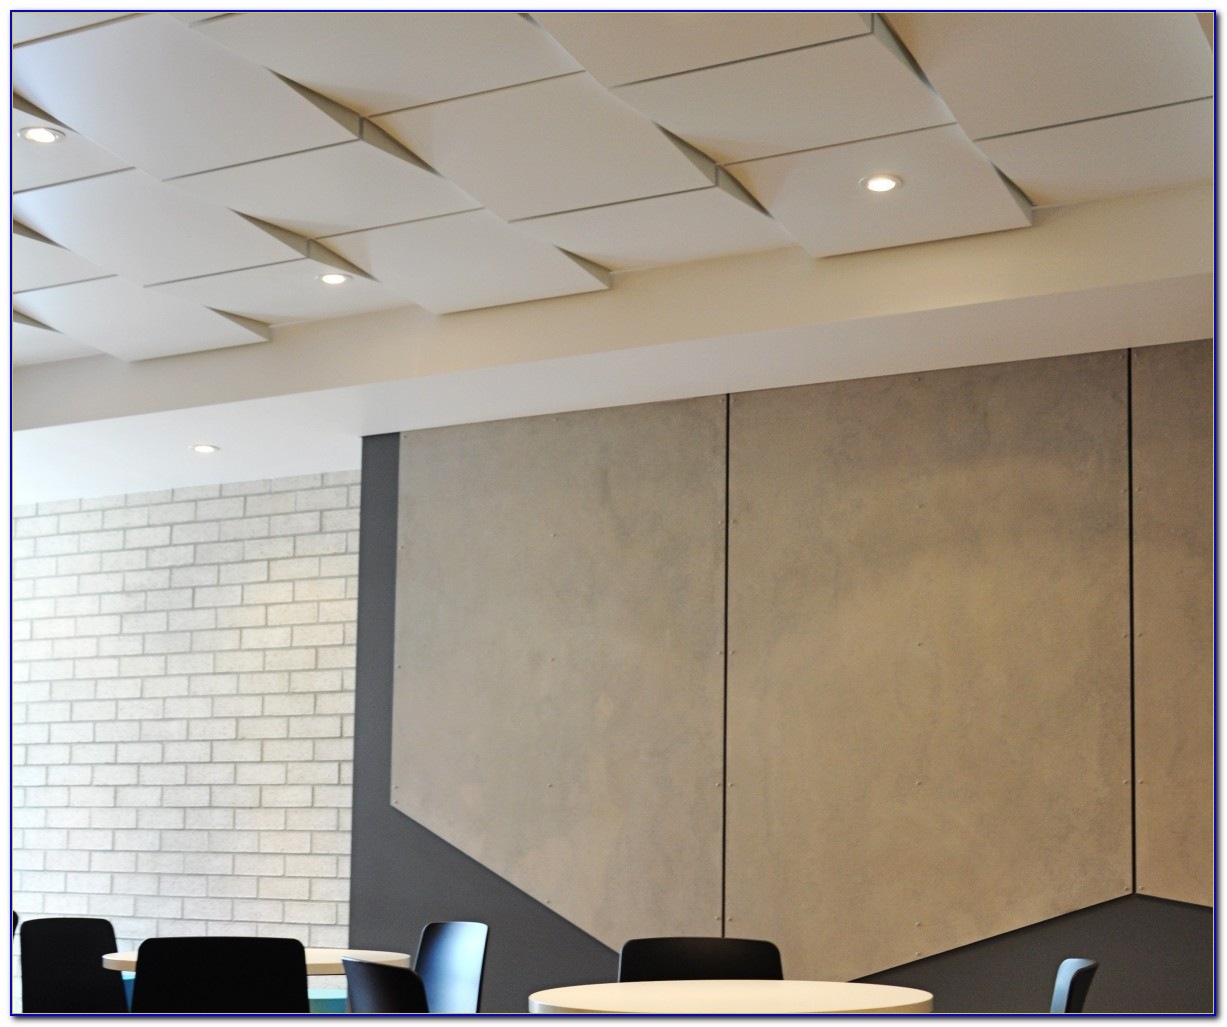 Commercial Drop Ceiling Tiles 2x4